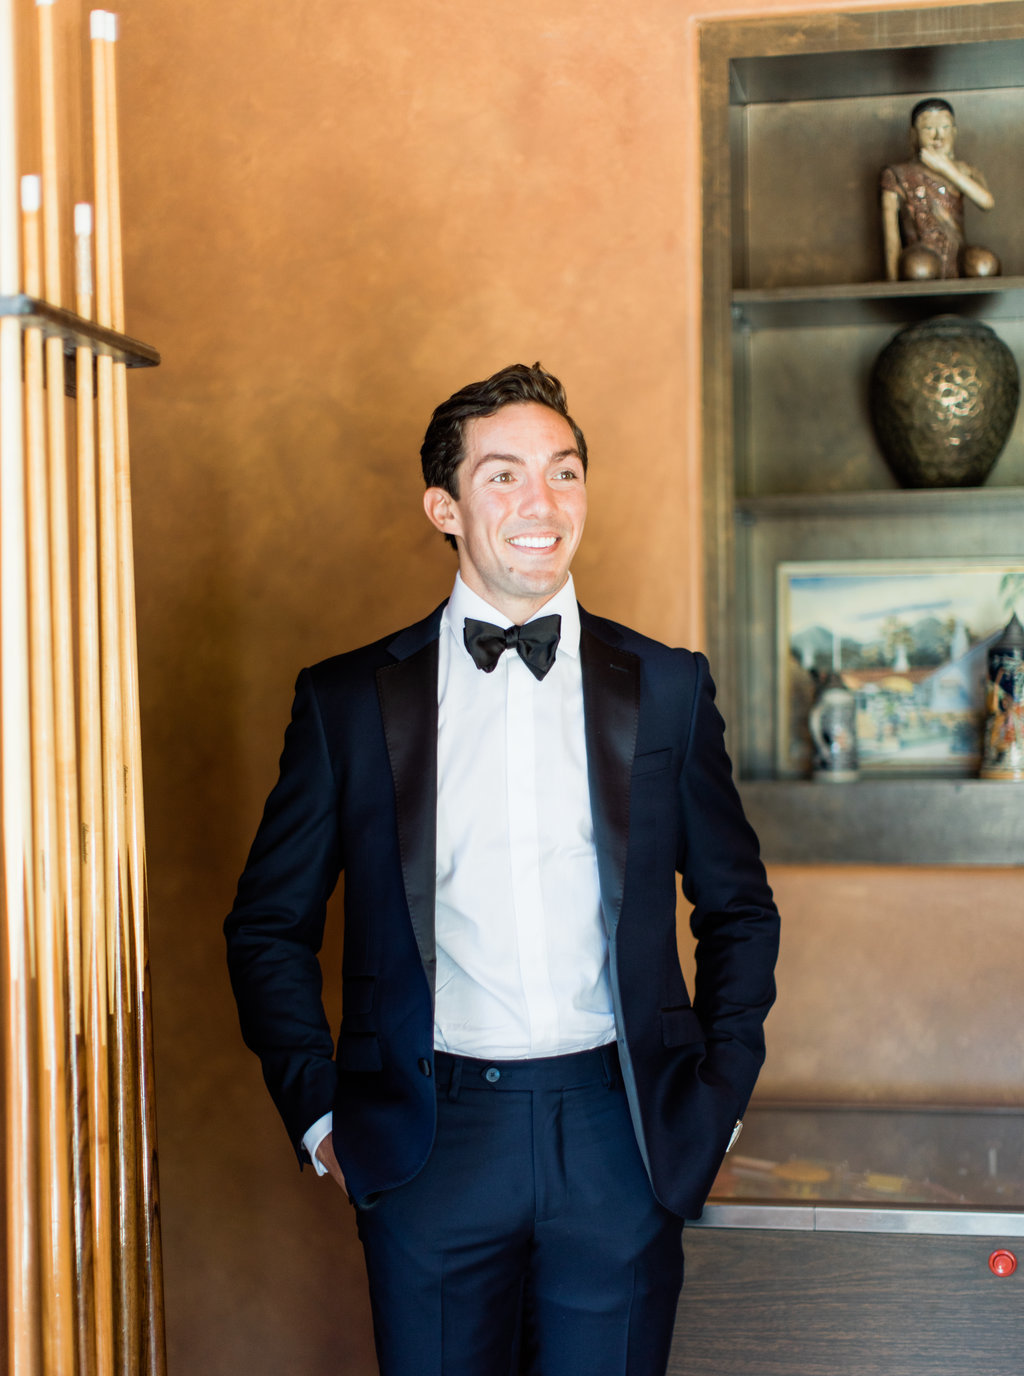 Groom wedding portrait in navy blue tuxedo